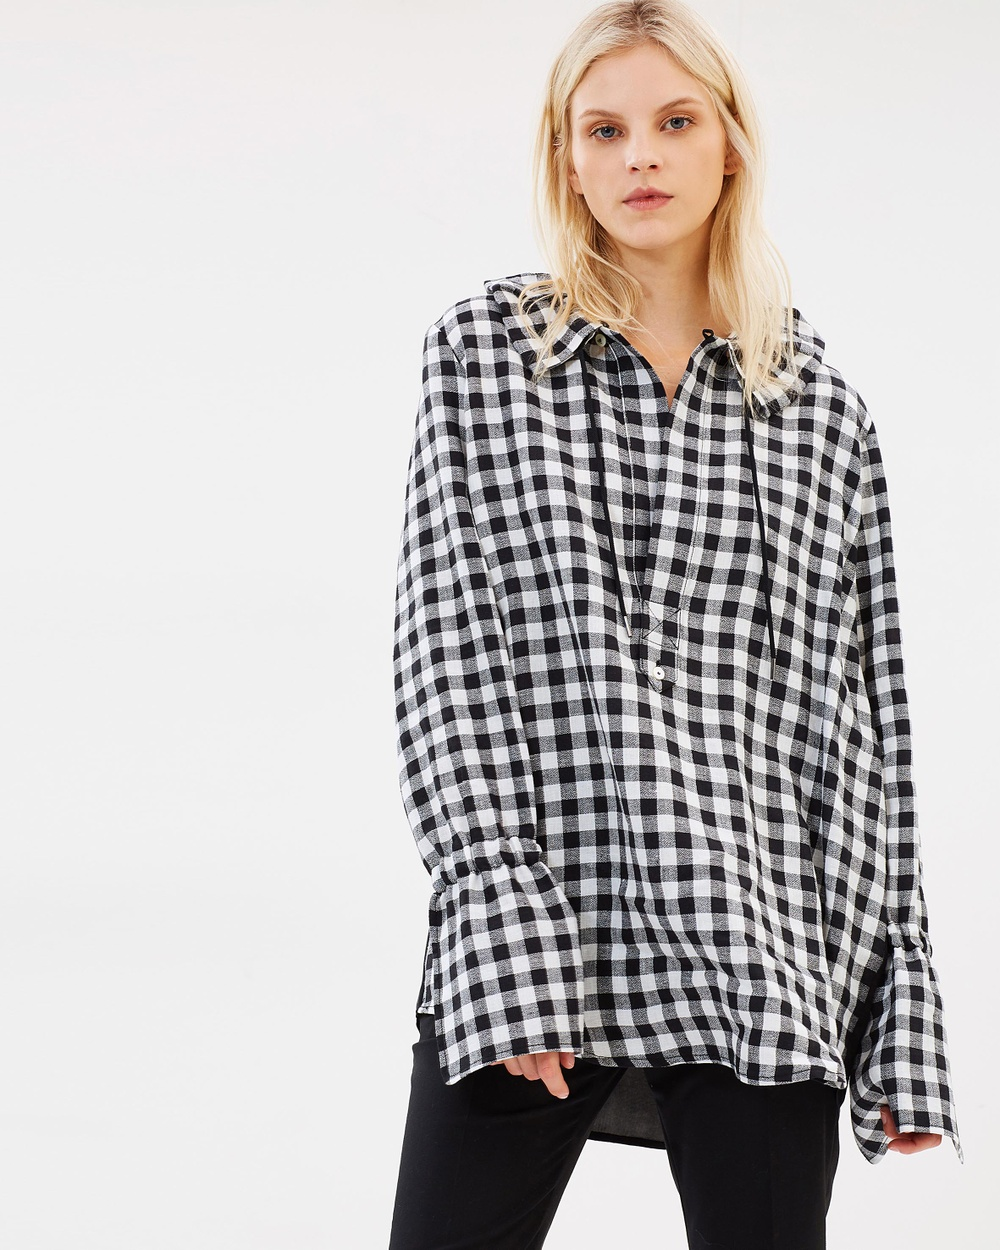 HOPE Zeal Shirt Tops Black Check Zeal Shirt